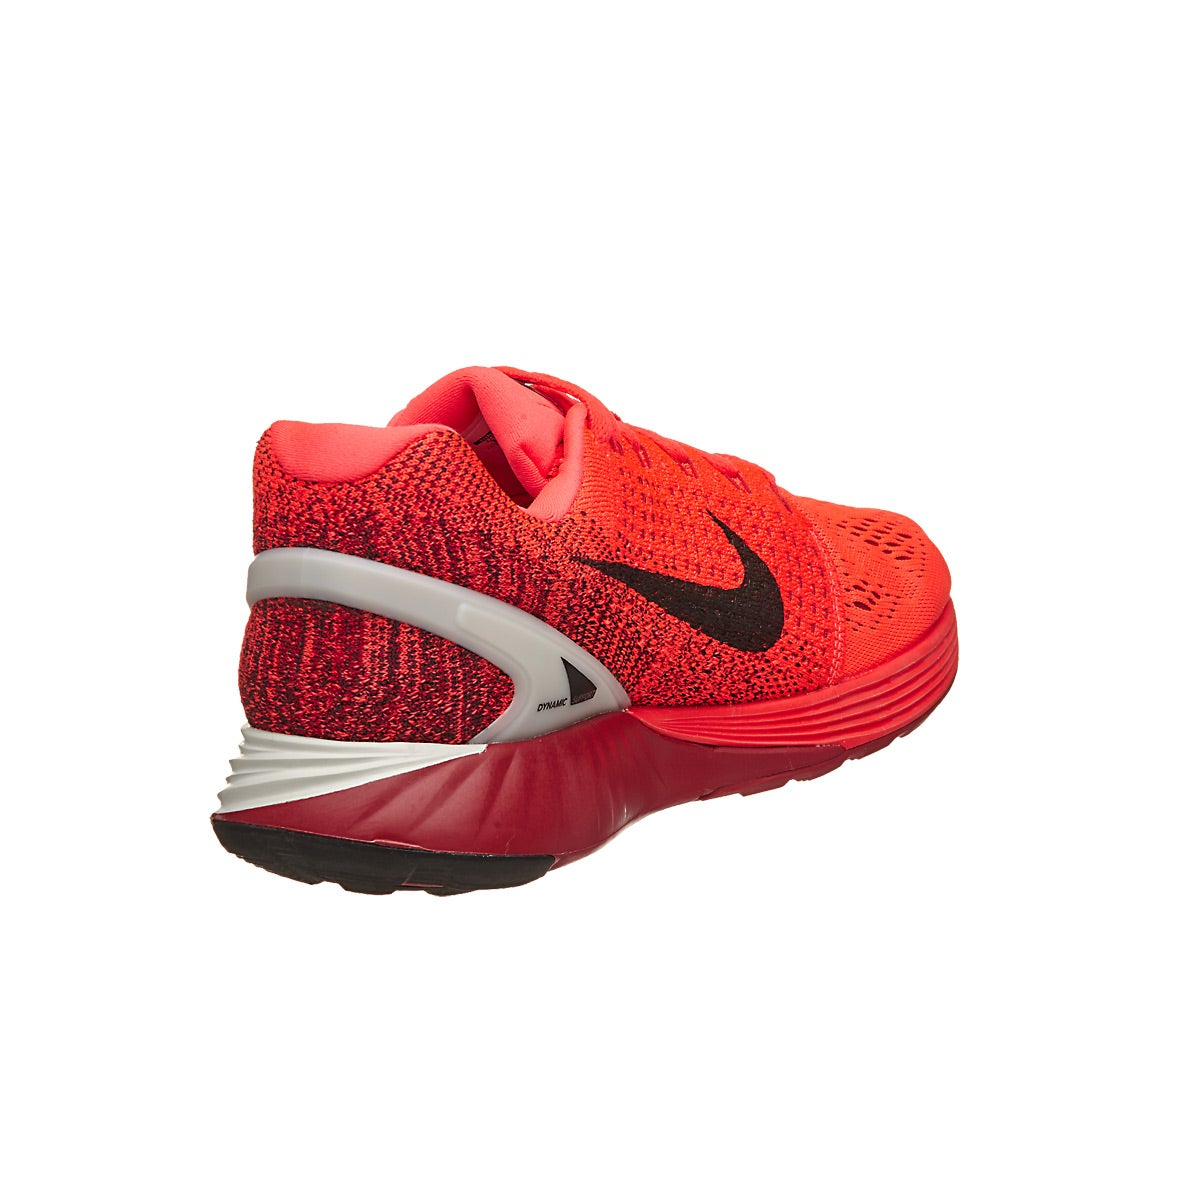 reputable site 3f1b0 ecc79 Nike LunarGlide 7 Men s Shoes Crimson Red Burgundy 360° View   Running  Warehouse.